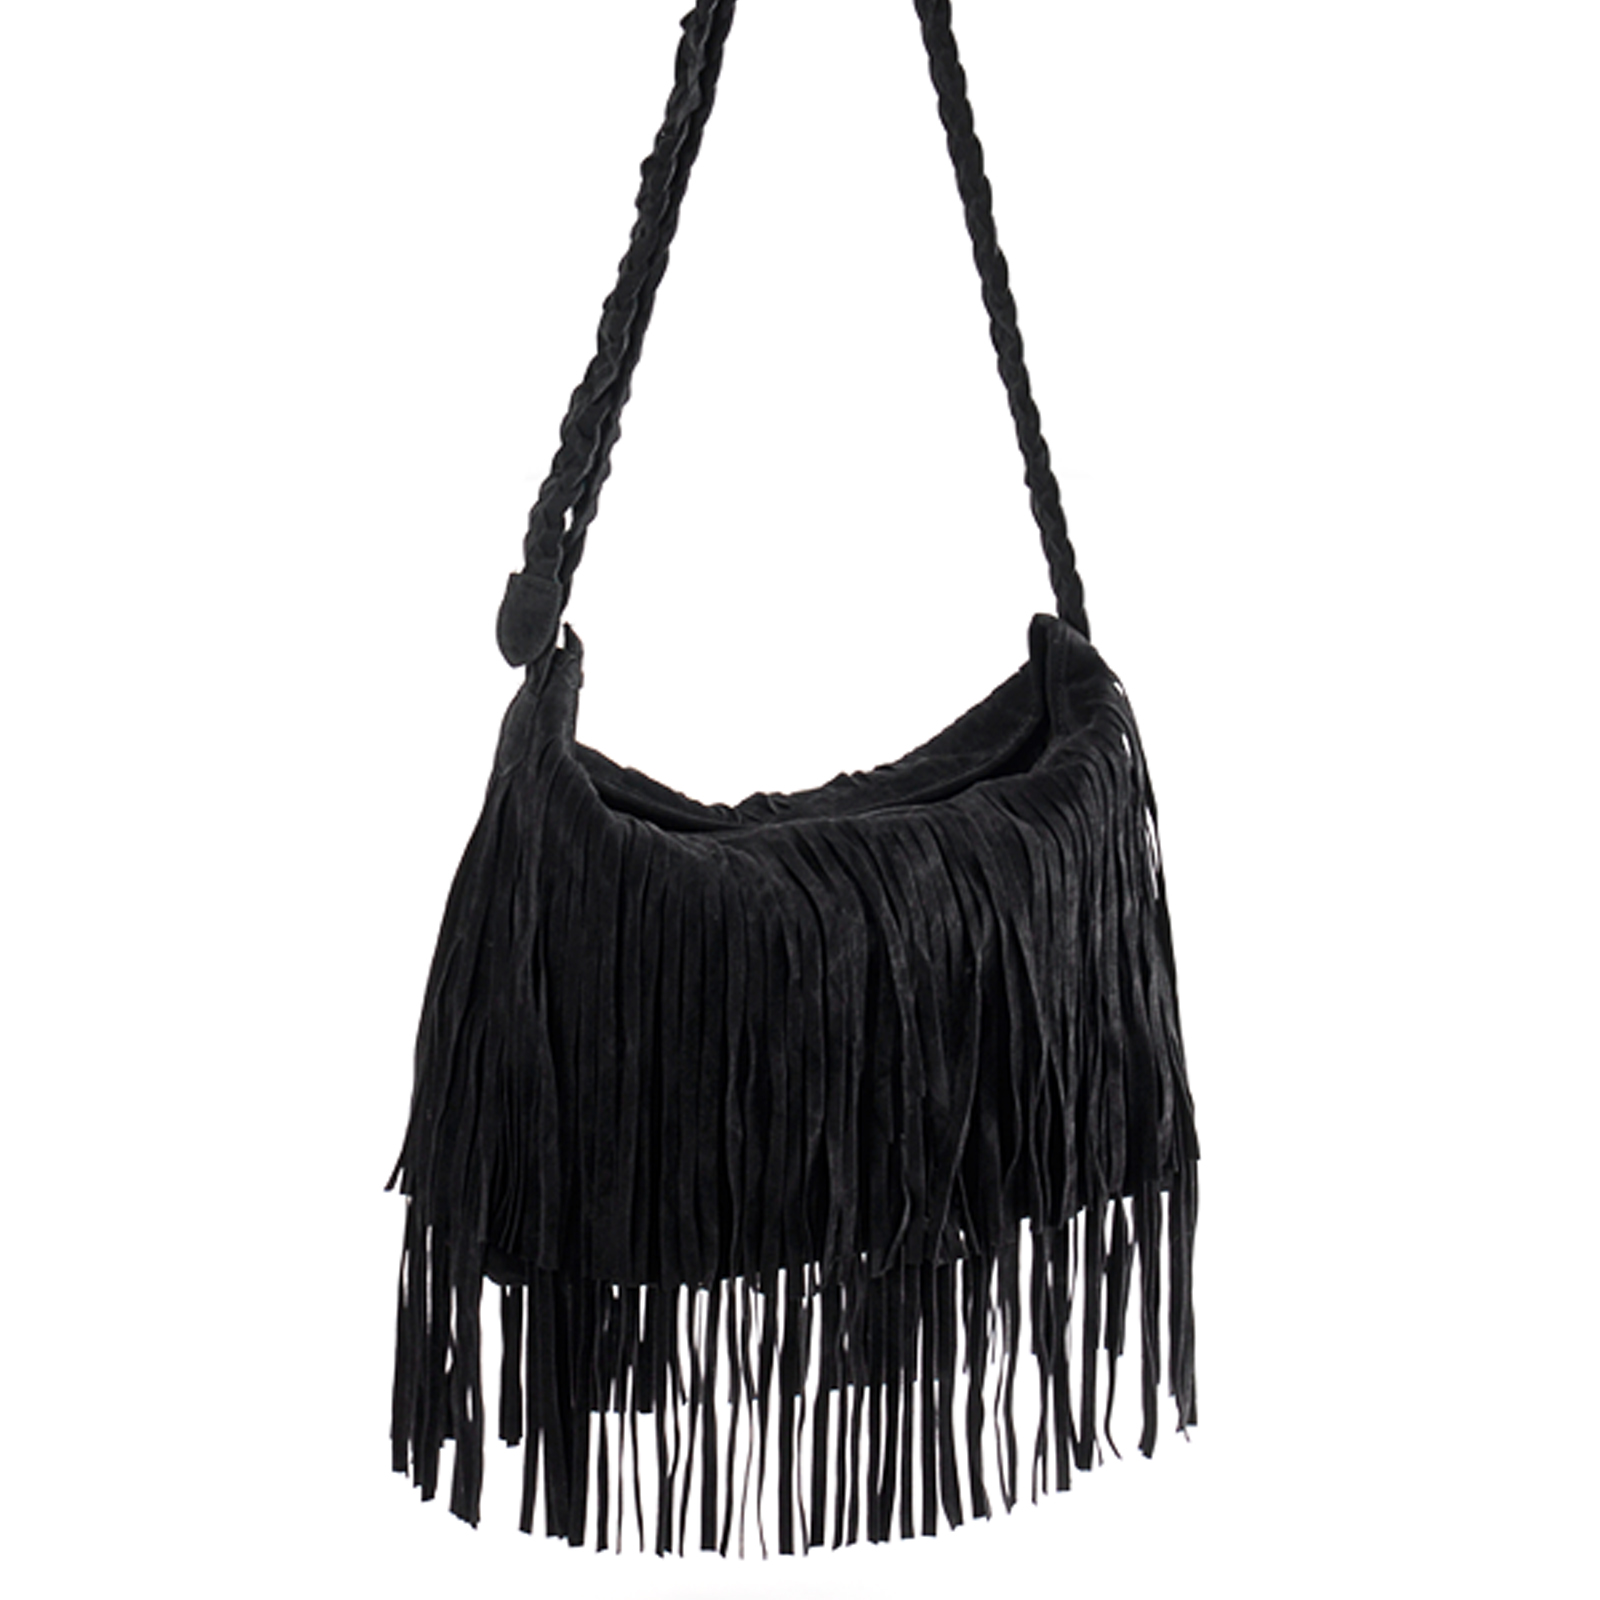 Faux Suede Layered Fringed Shoulder Bag Women Bag Cross Body Bag Messenger    eBay a924c5a111